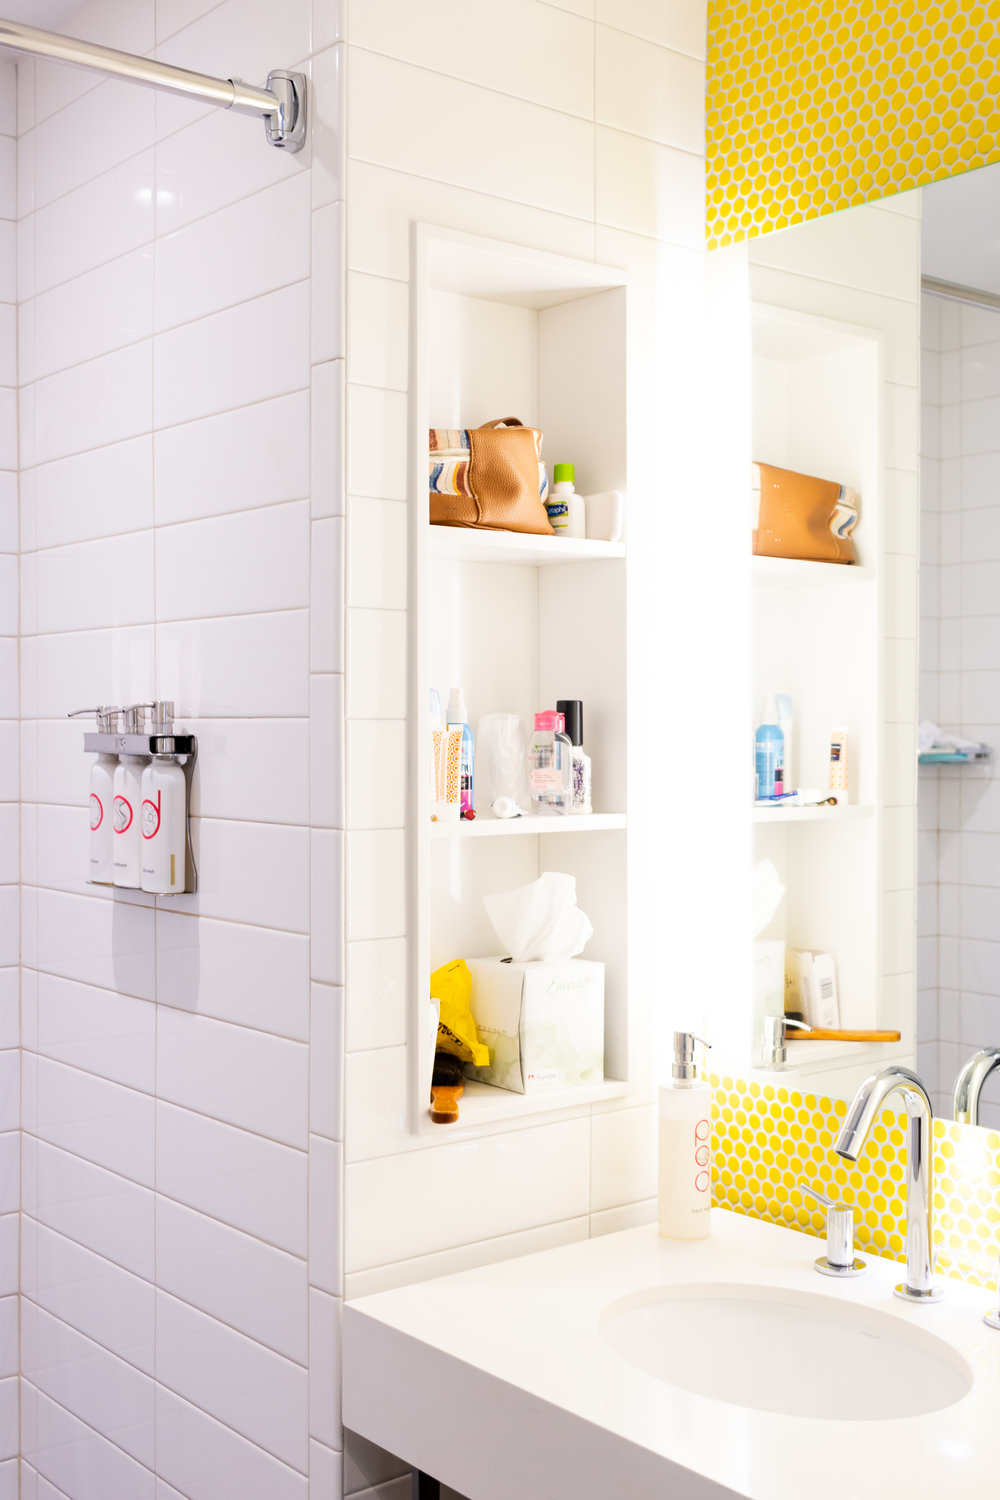 Bathroom with product dispensers!